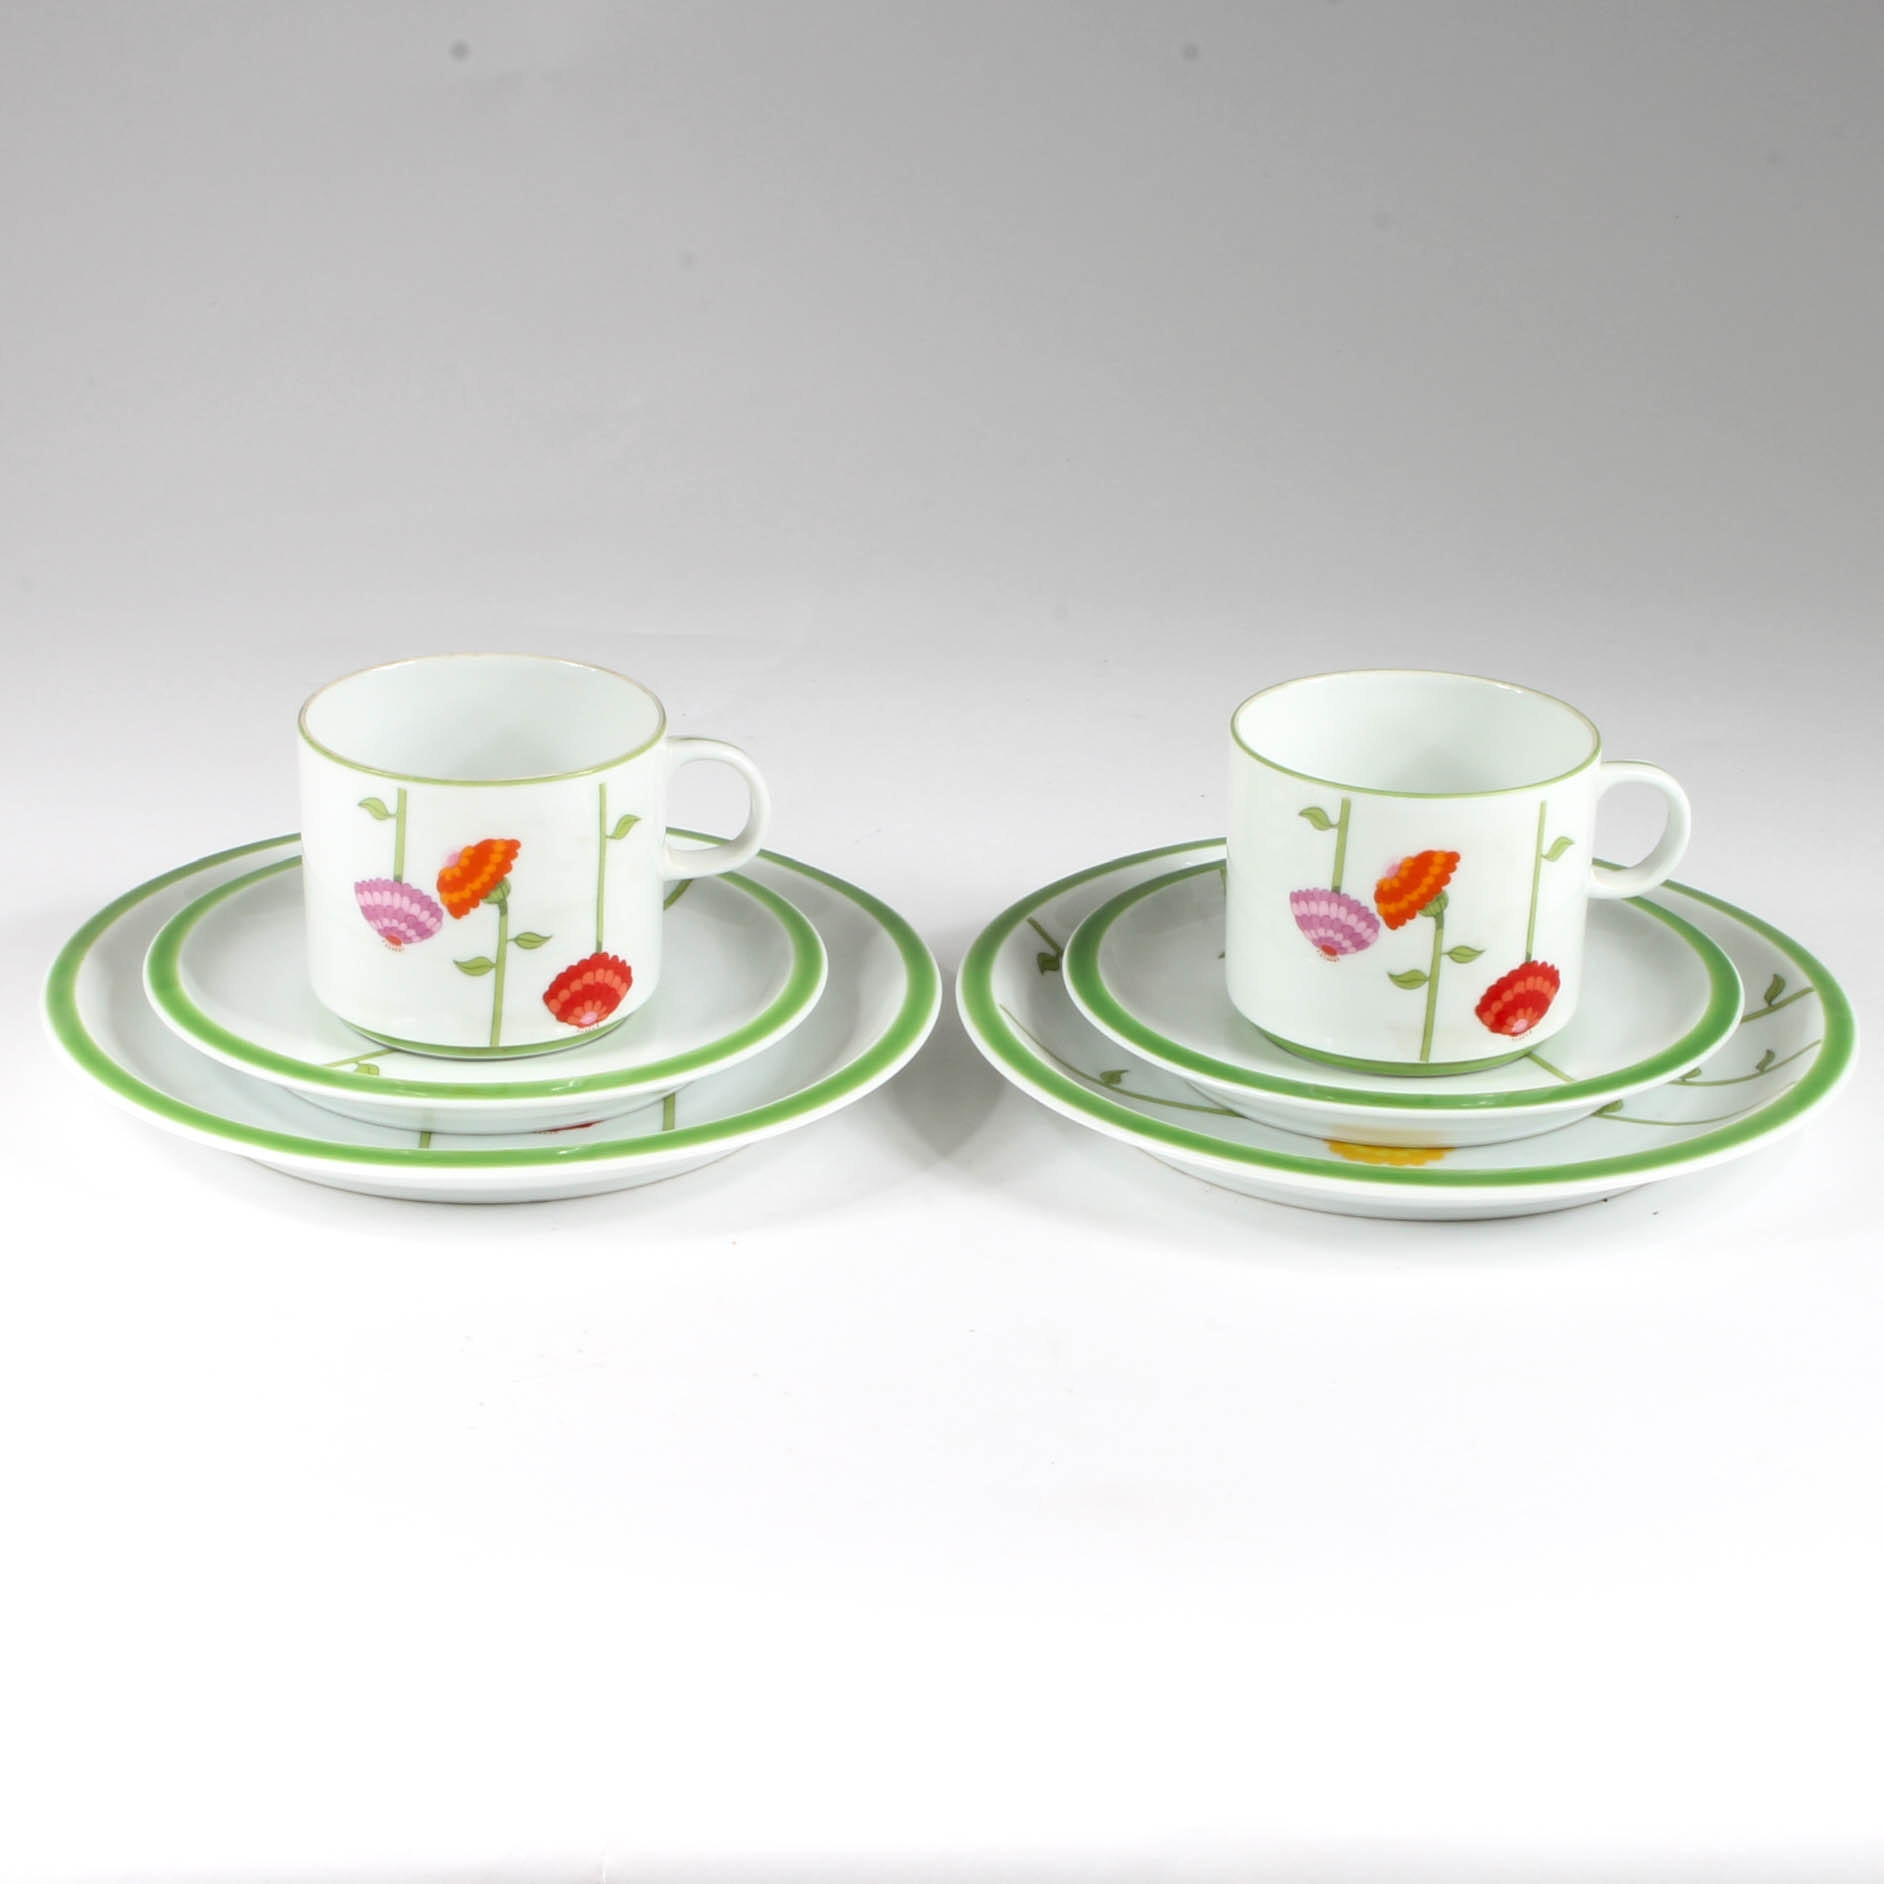 Denby Teacup Sets